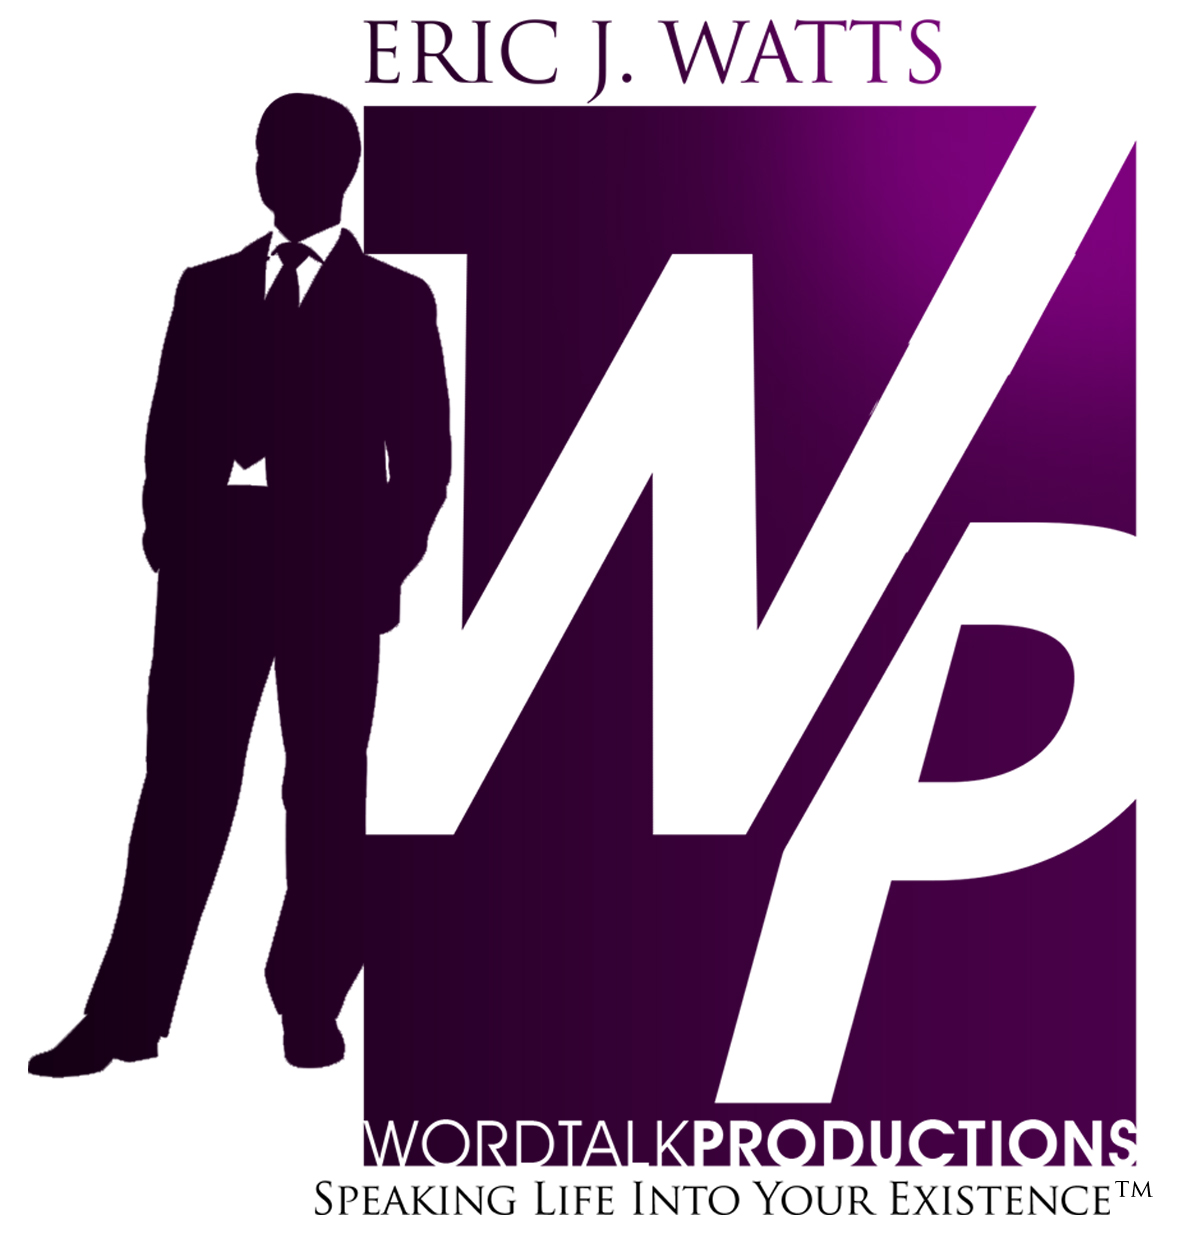 WordTalk Productions, LLC